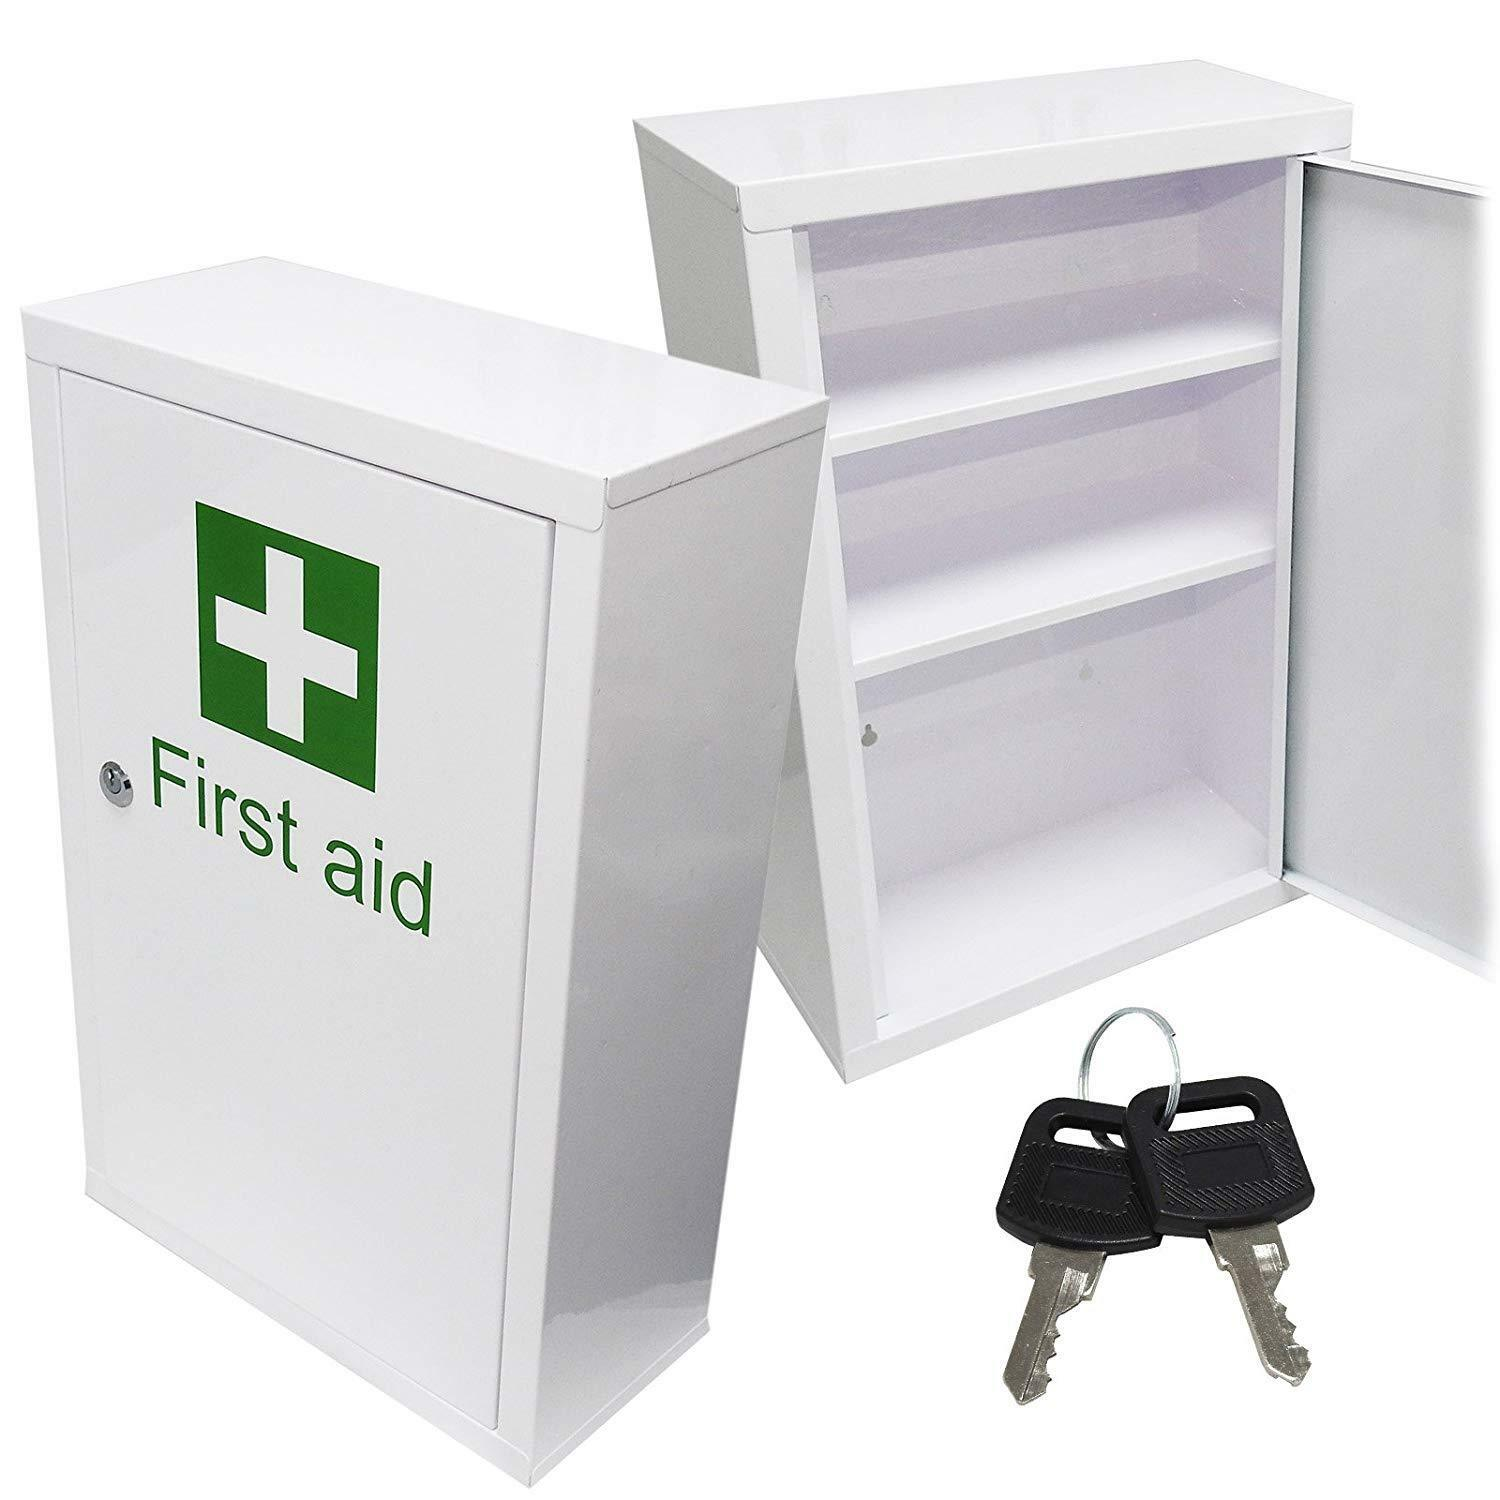 Metal Wall Cabinets Details About Large Medicine Cabinet First Aid Metal Wall Mount Cabinet Cupboard Locker Keys